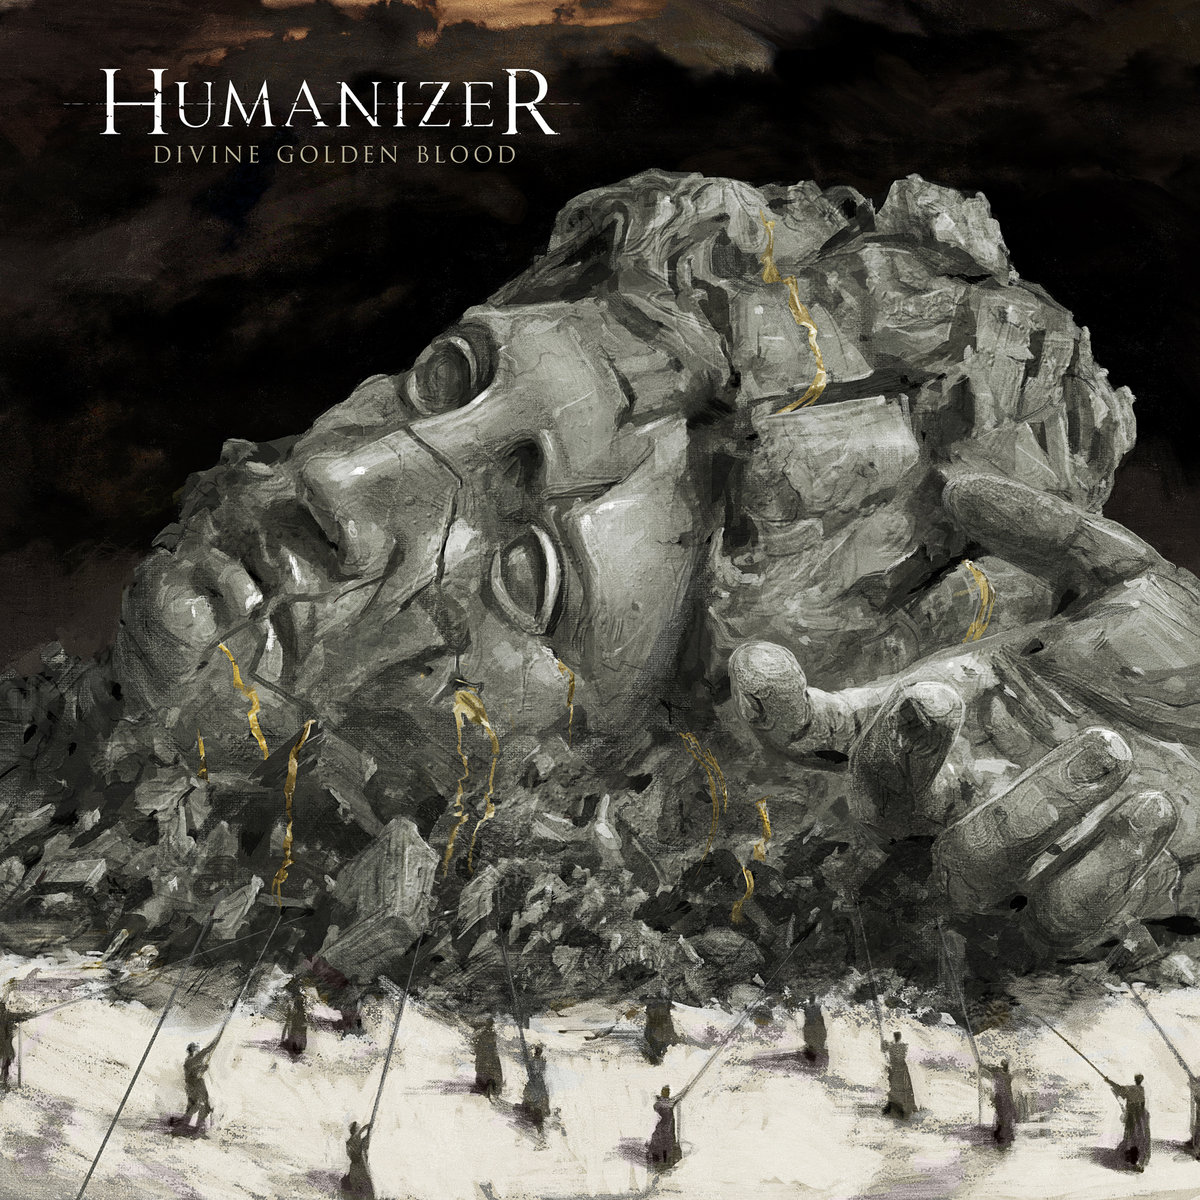 Divine Golden Blood | HUMANIZER